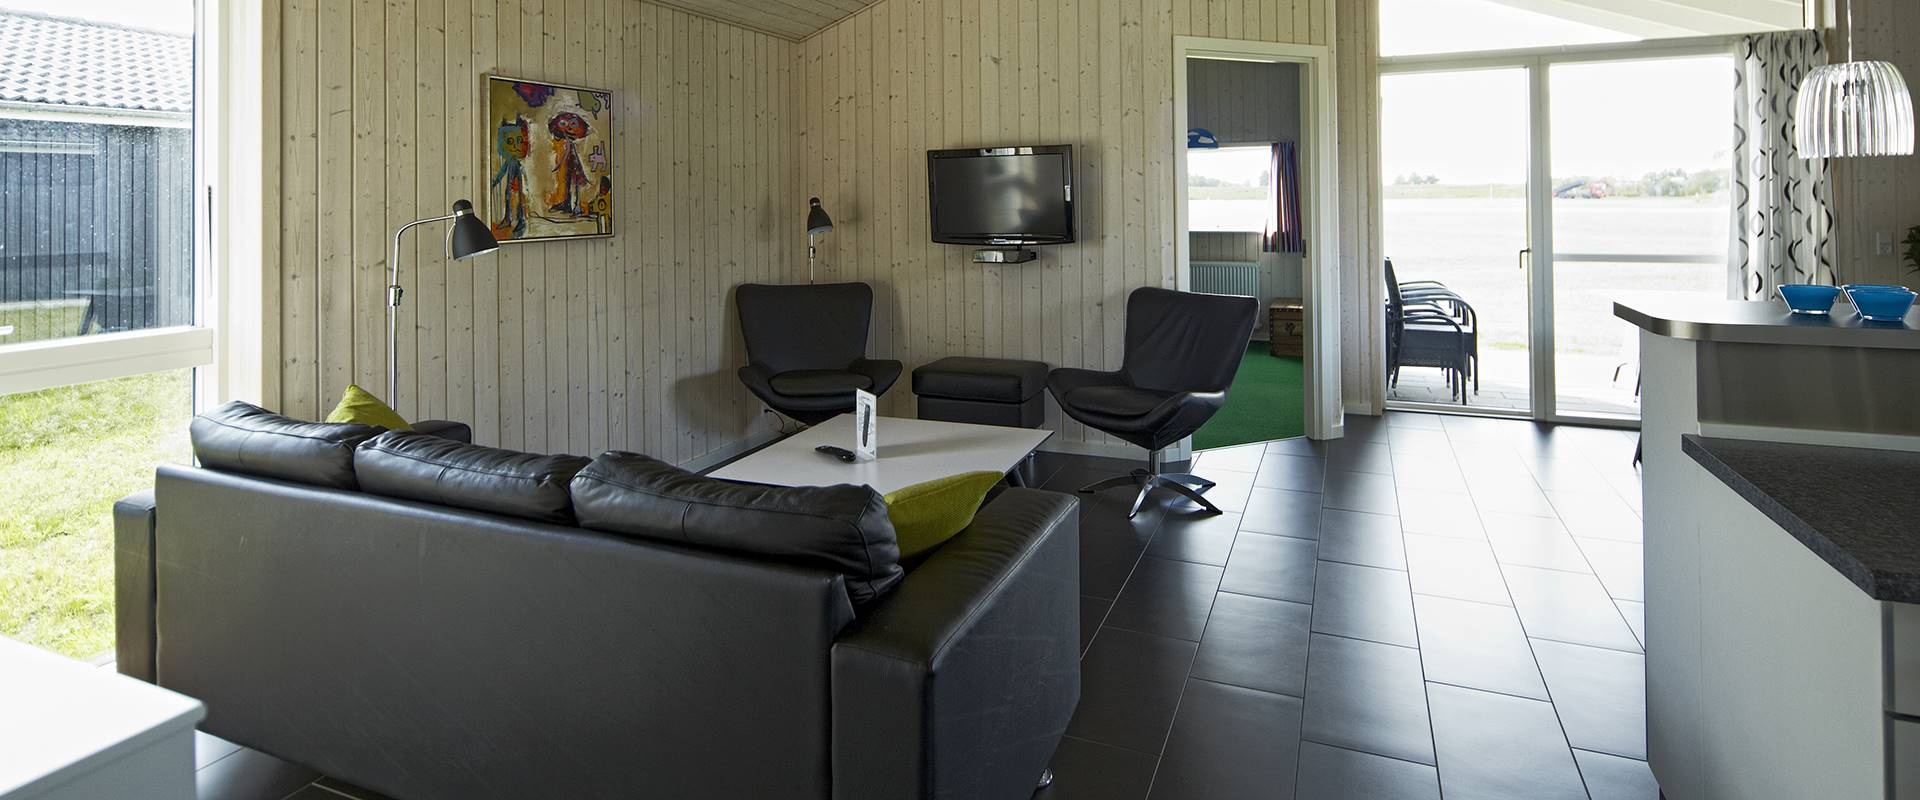 Classic Plus 6 holiday home Lalandia in Billund